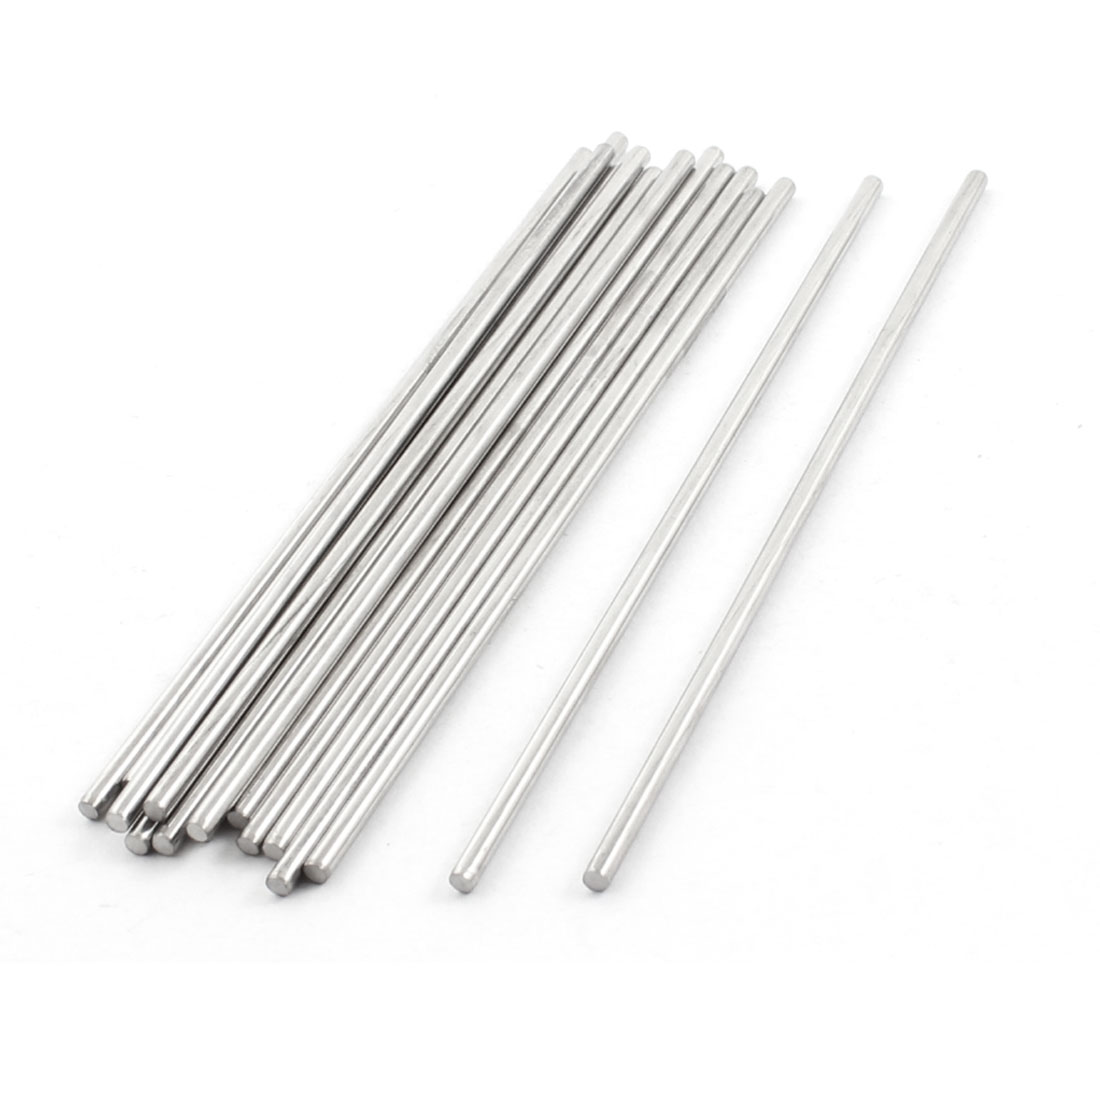 RC Helicopter 250mm x 2.5mm Stainless Steel Round Rod Shaft Bar Stick 15Pcs